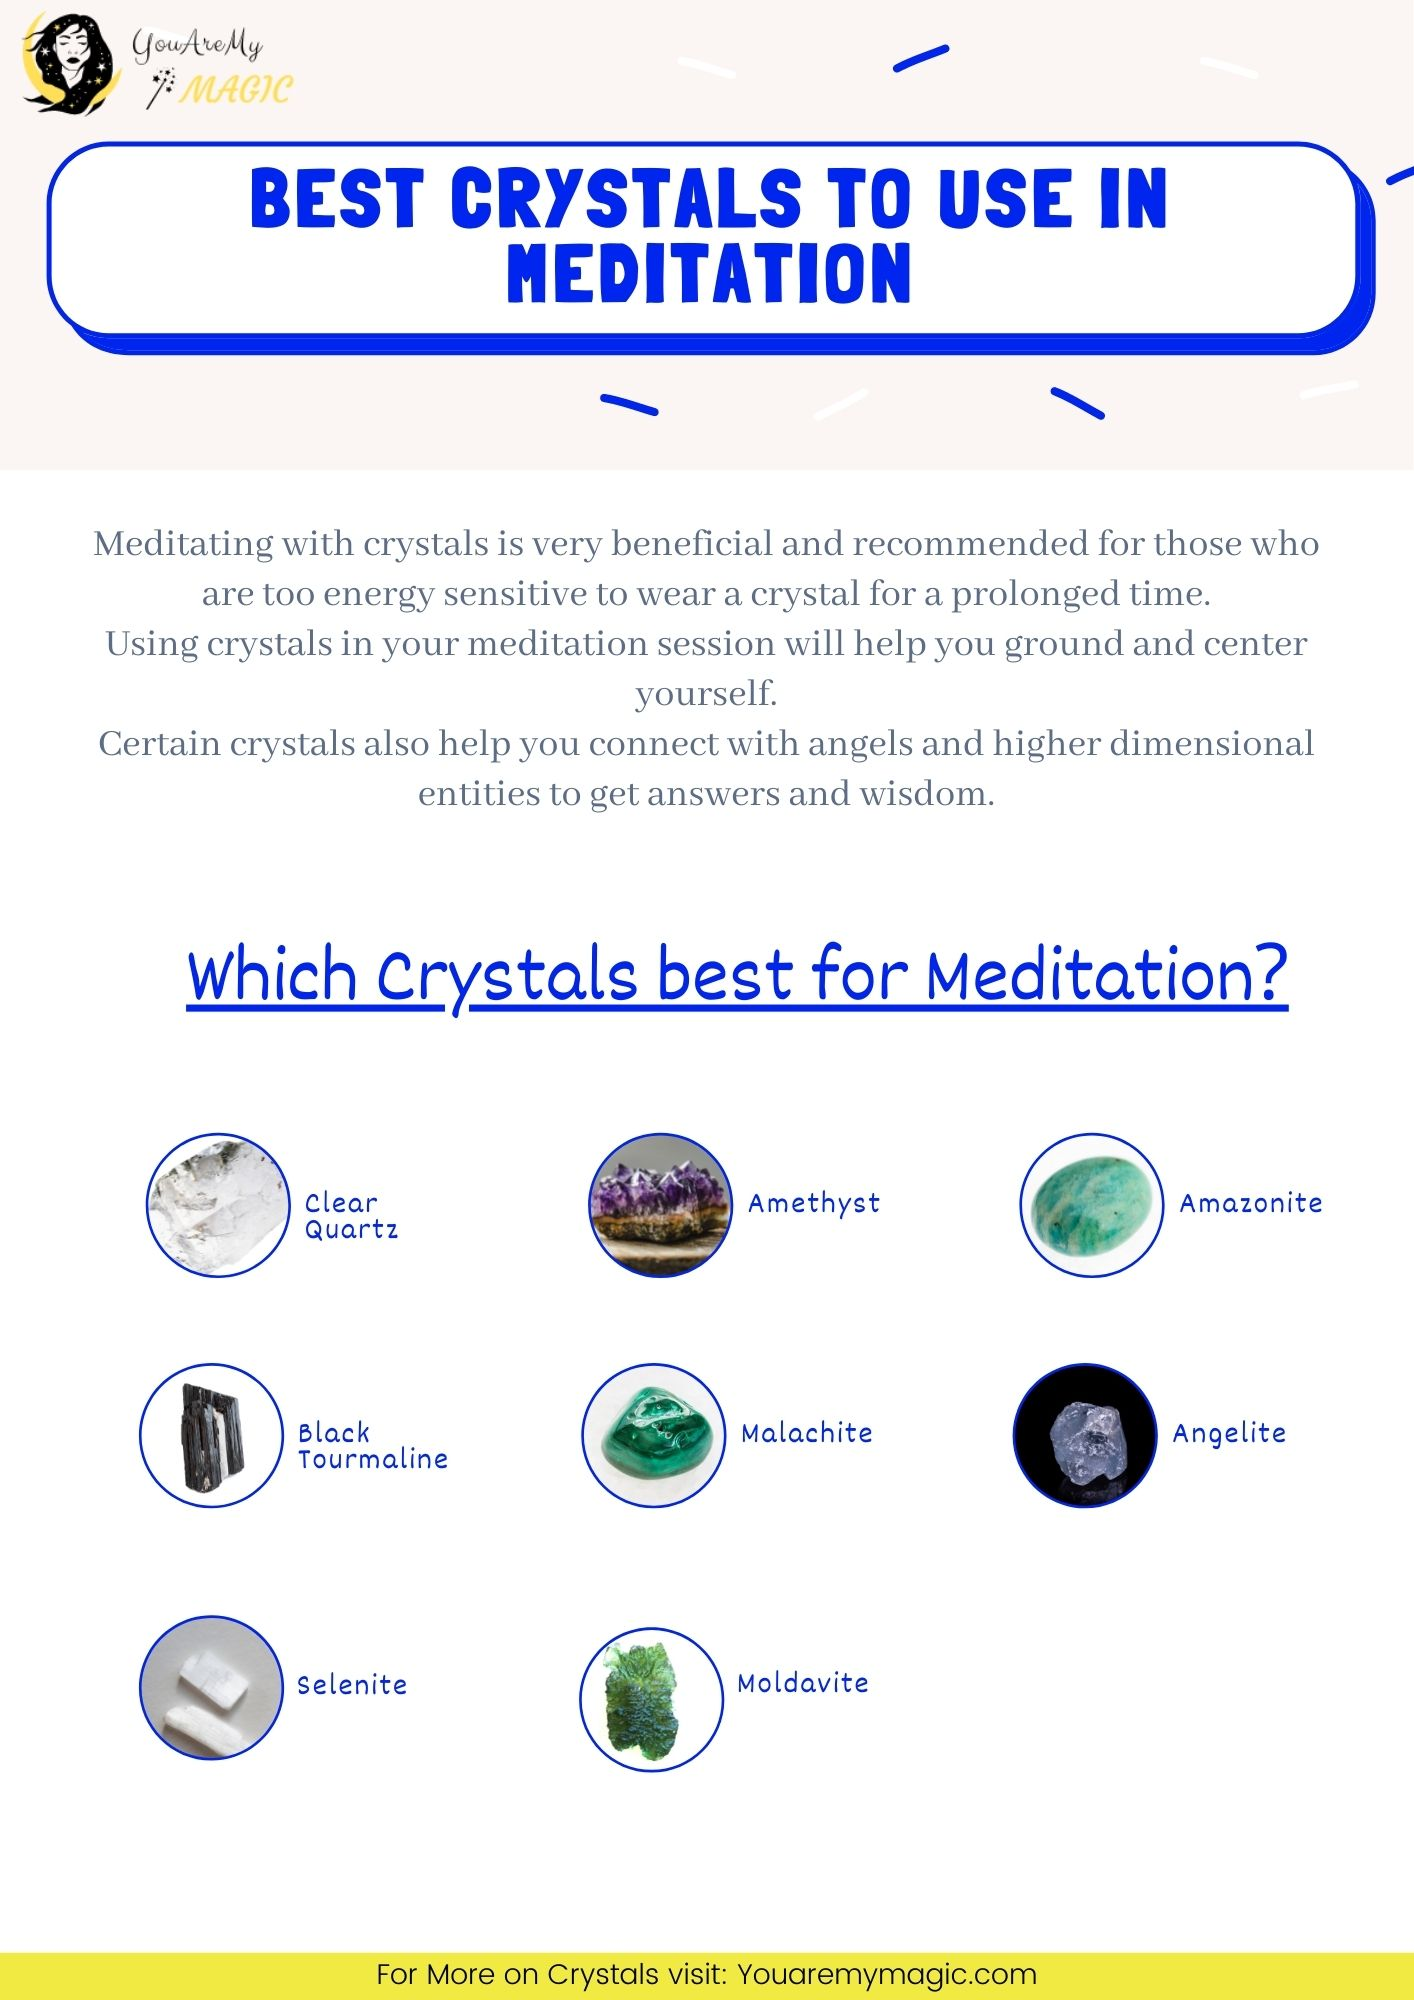 Best crystals to use in Meditation